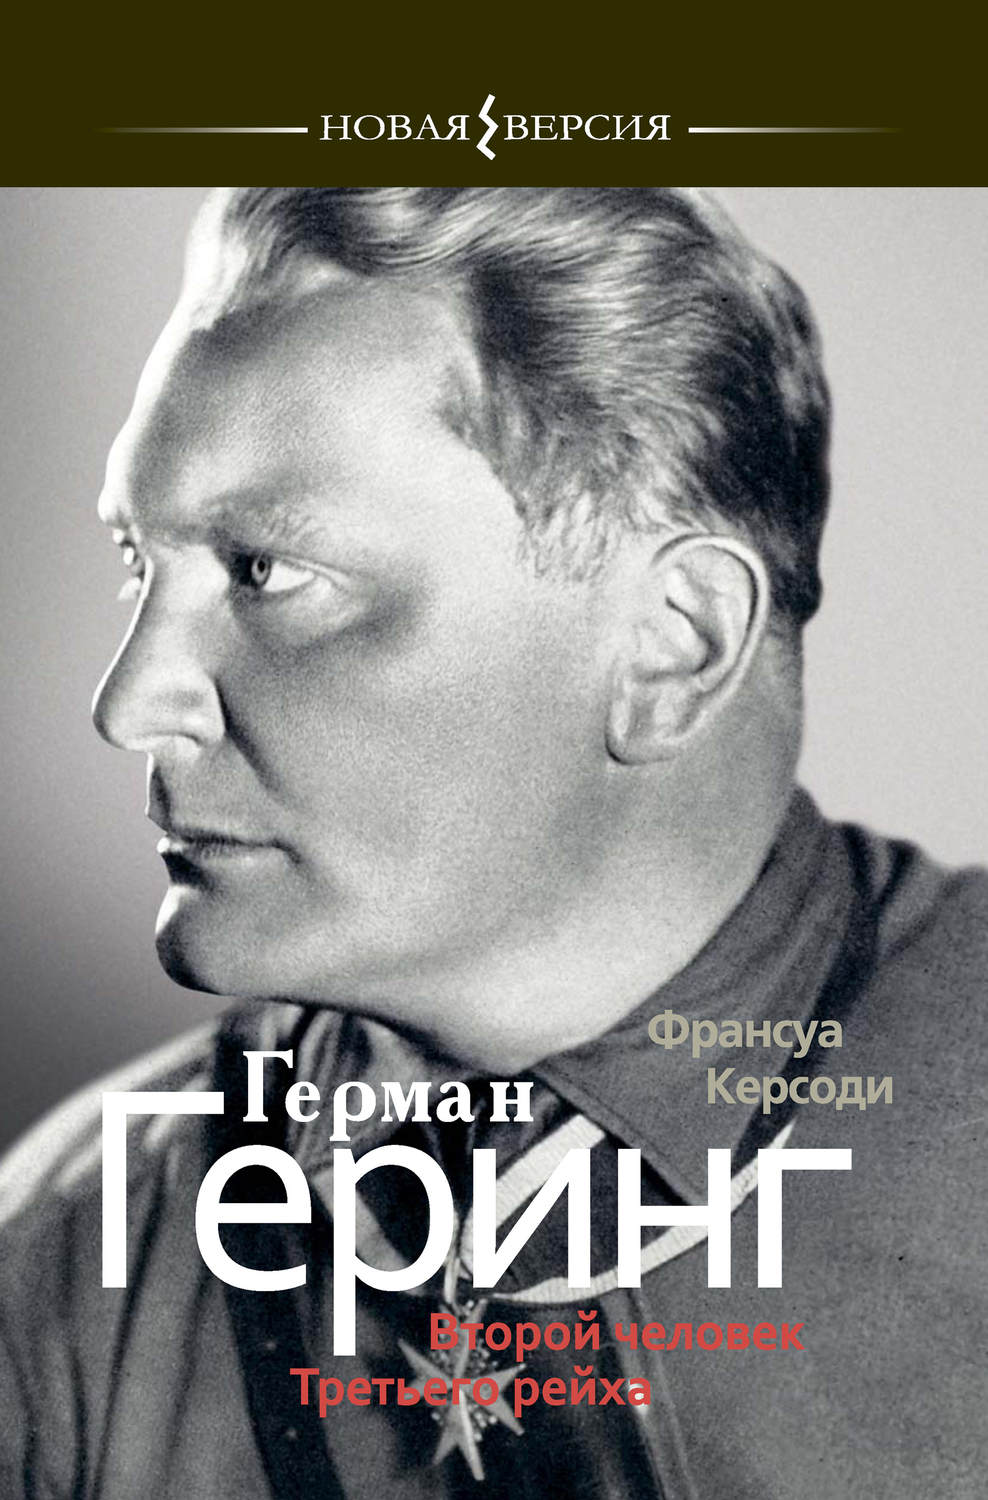 book Гимнастика с элементами